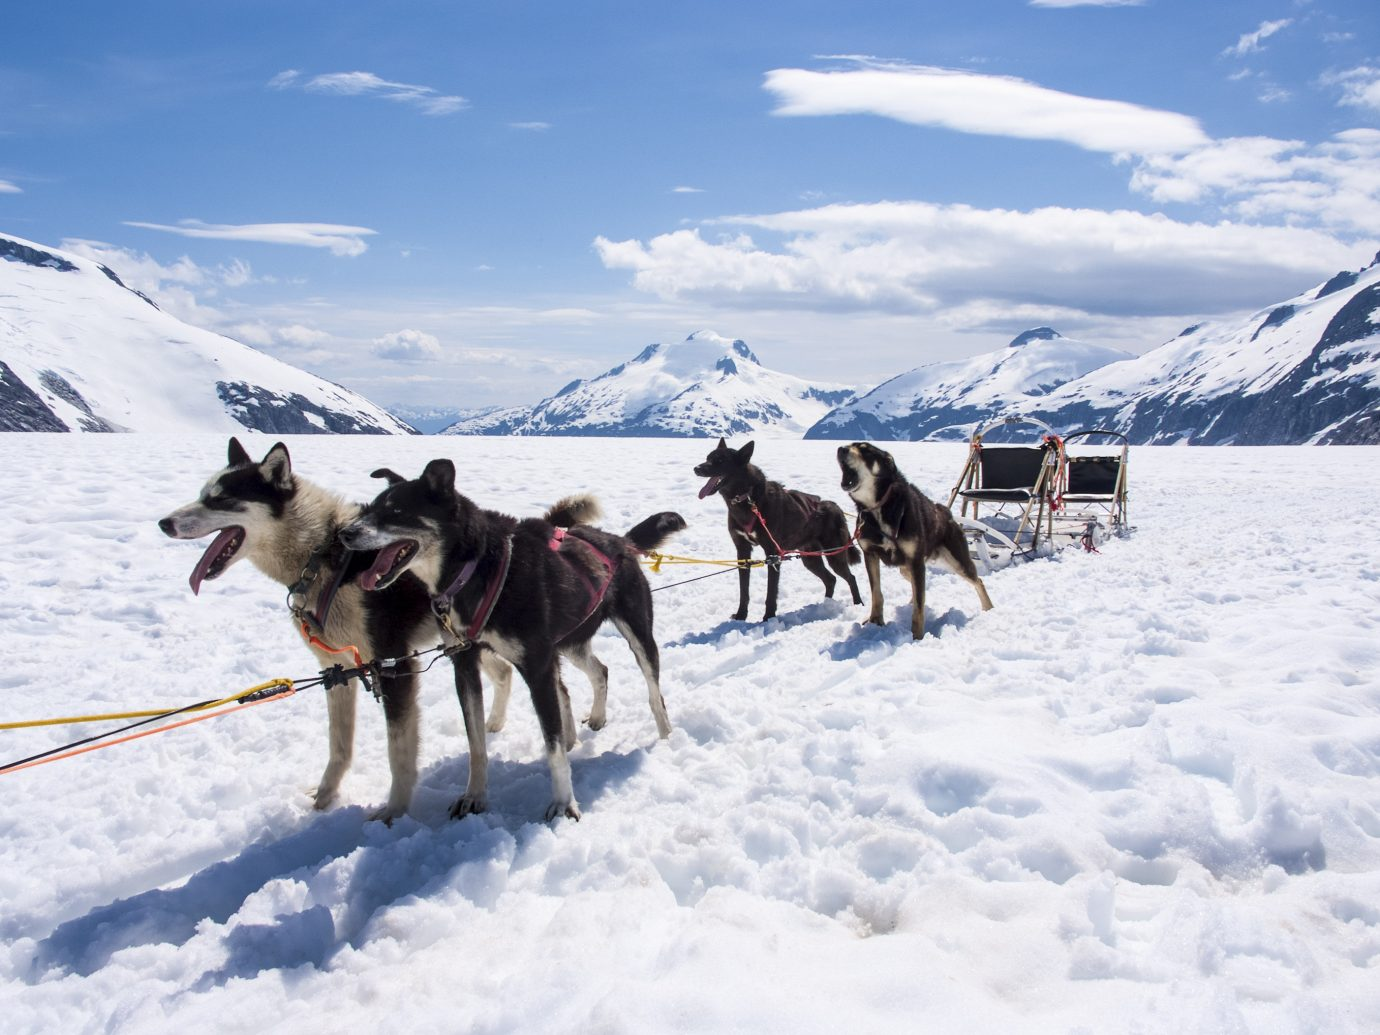 Trip Ideas snow outdoor sky transport skiing dog sled mushing vehicle land vehicle sled Winter sled dog racing covered mountain cross sled dog arctic dog like mammal day